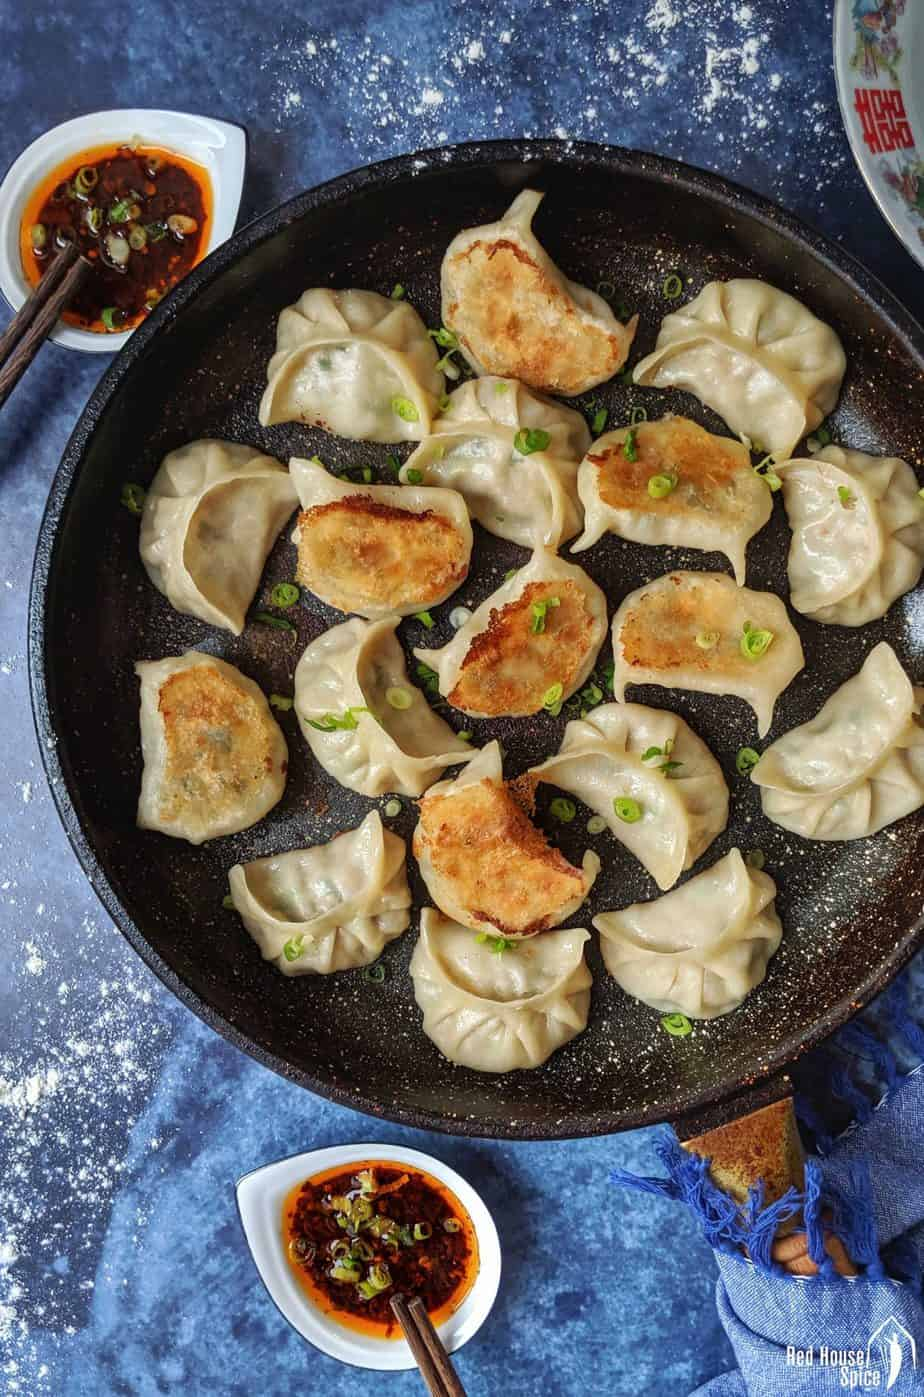 Pan fried dumplings with dipping sauce on the side.